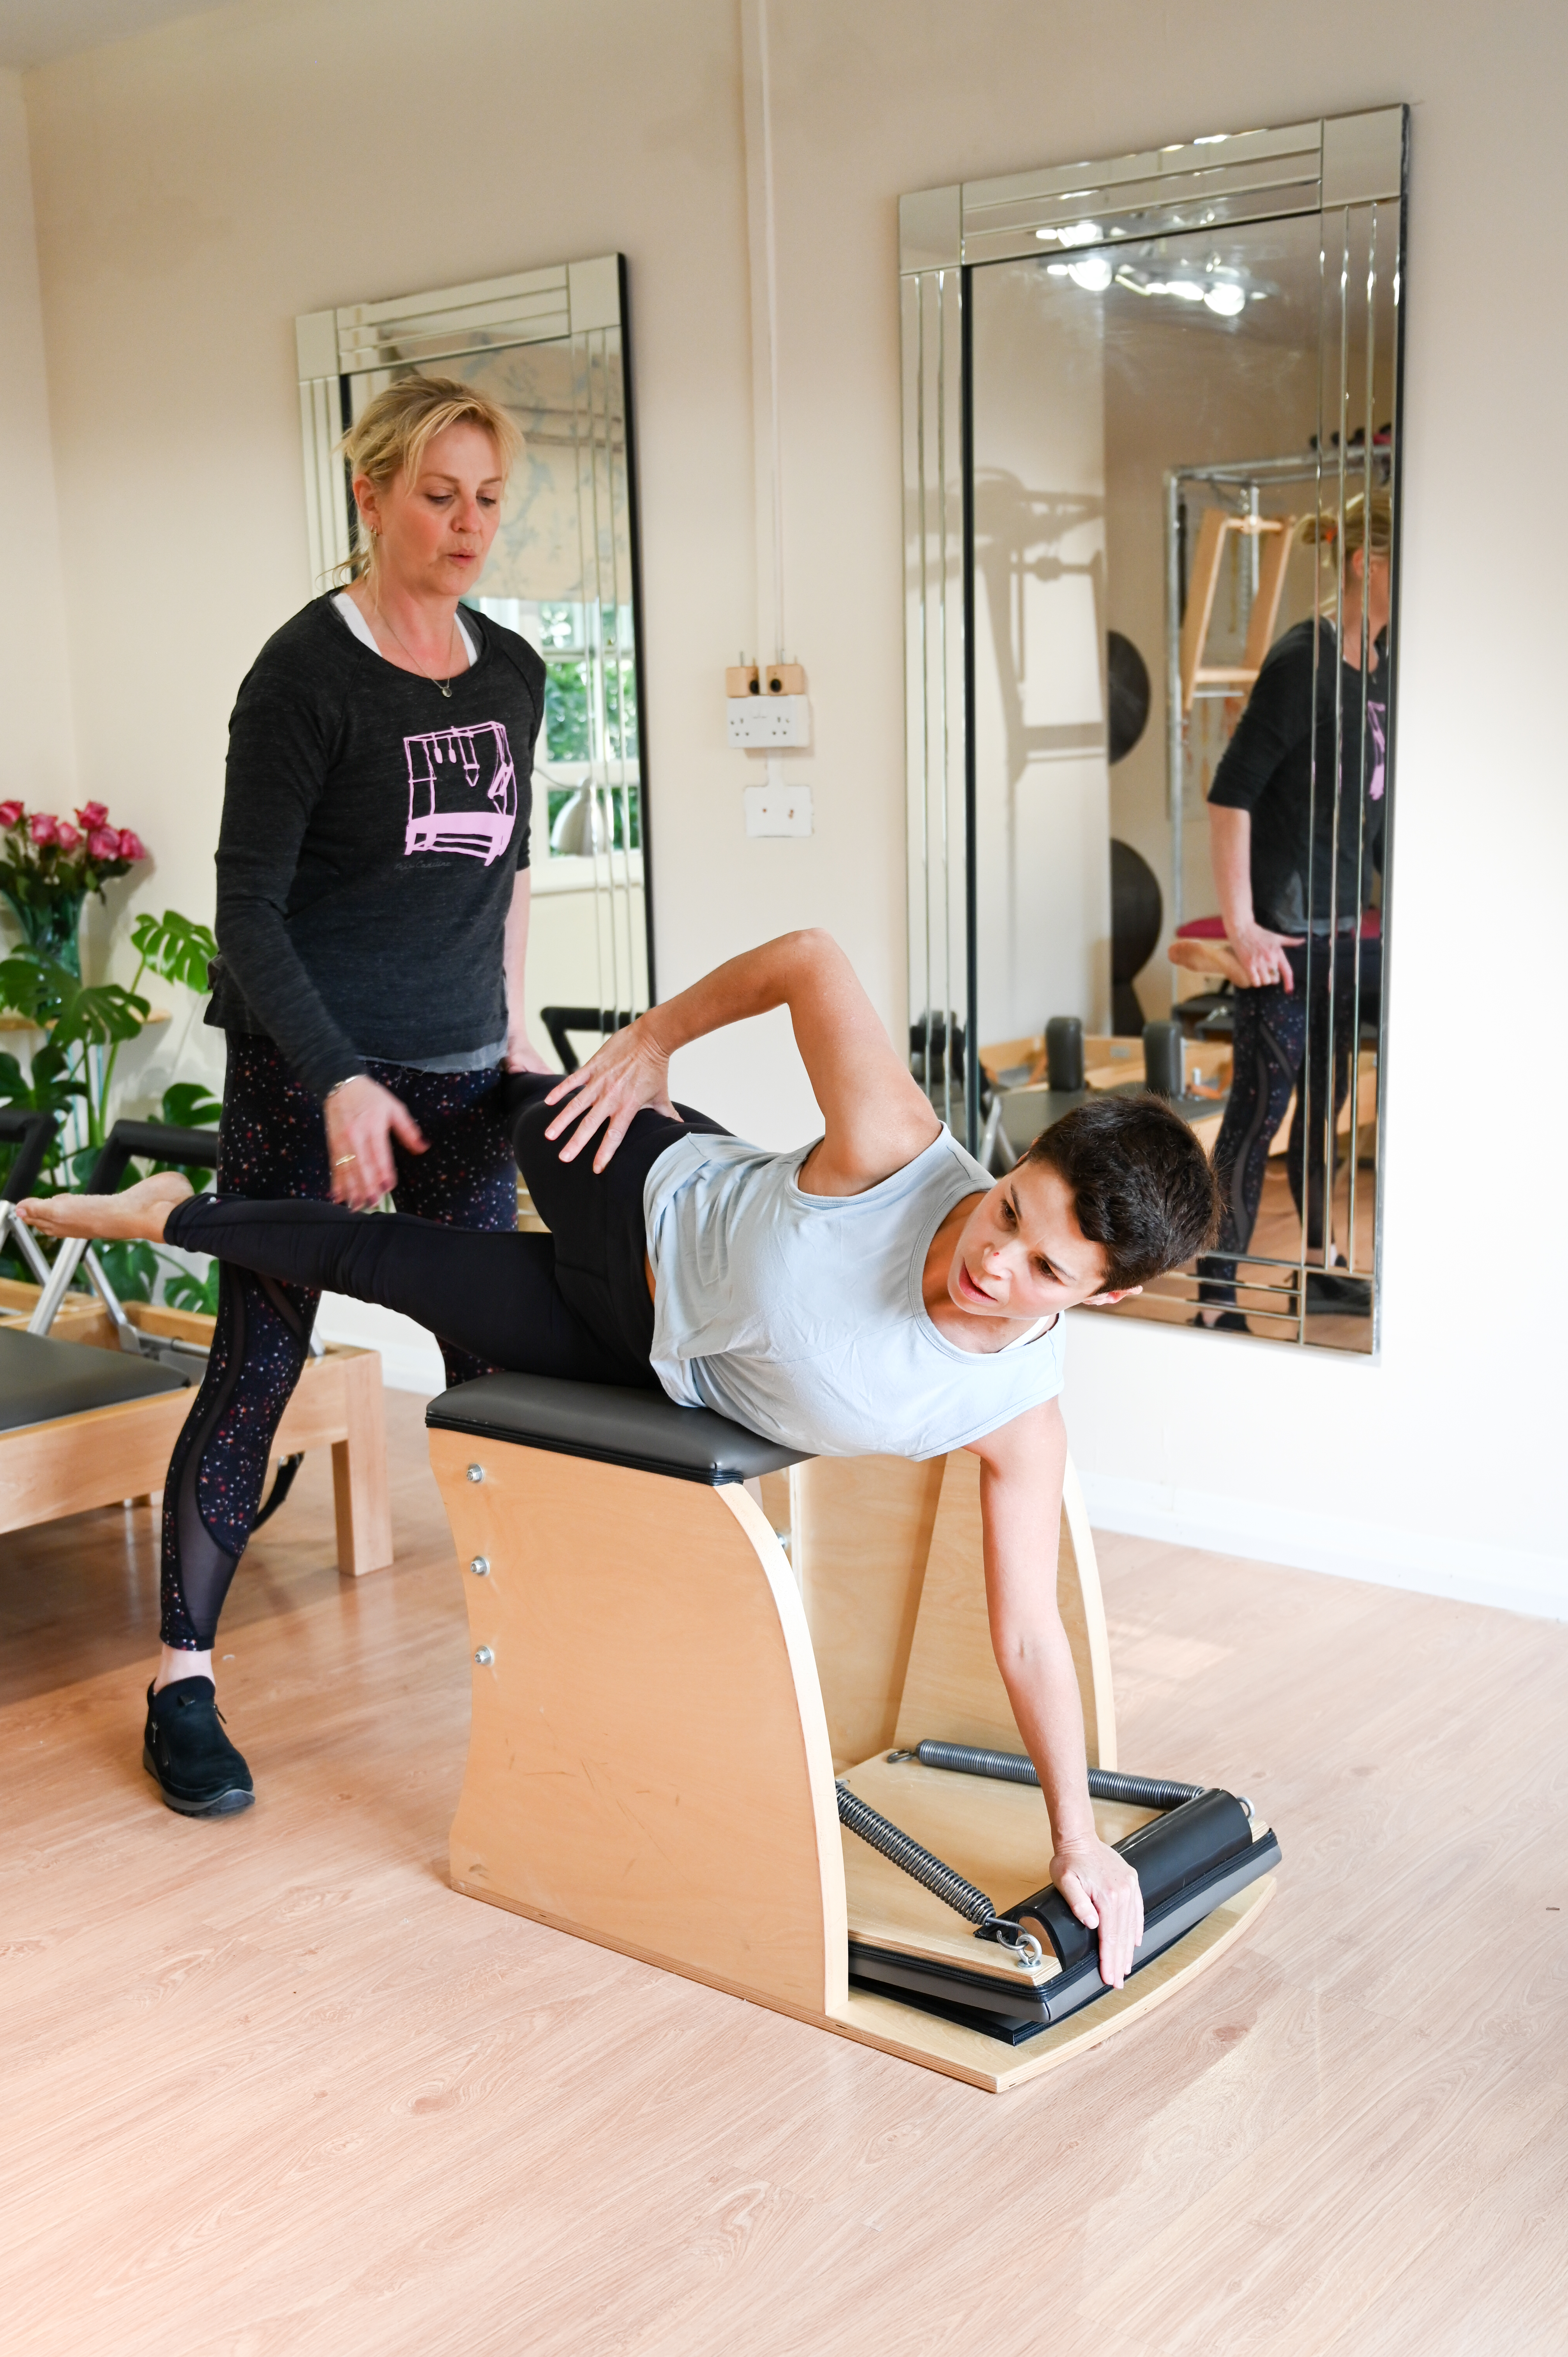 Lizzie Qualie helping client with a stretch